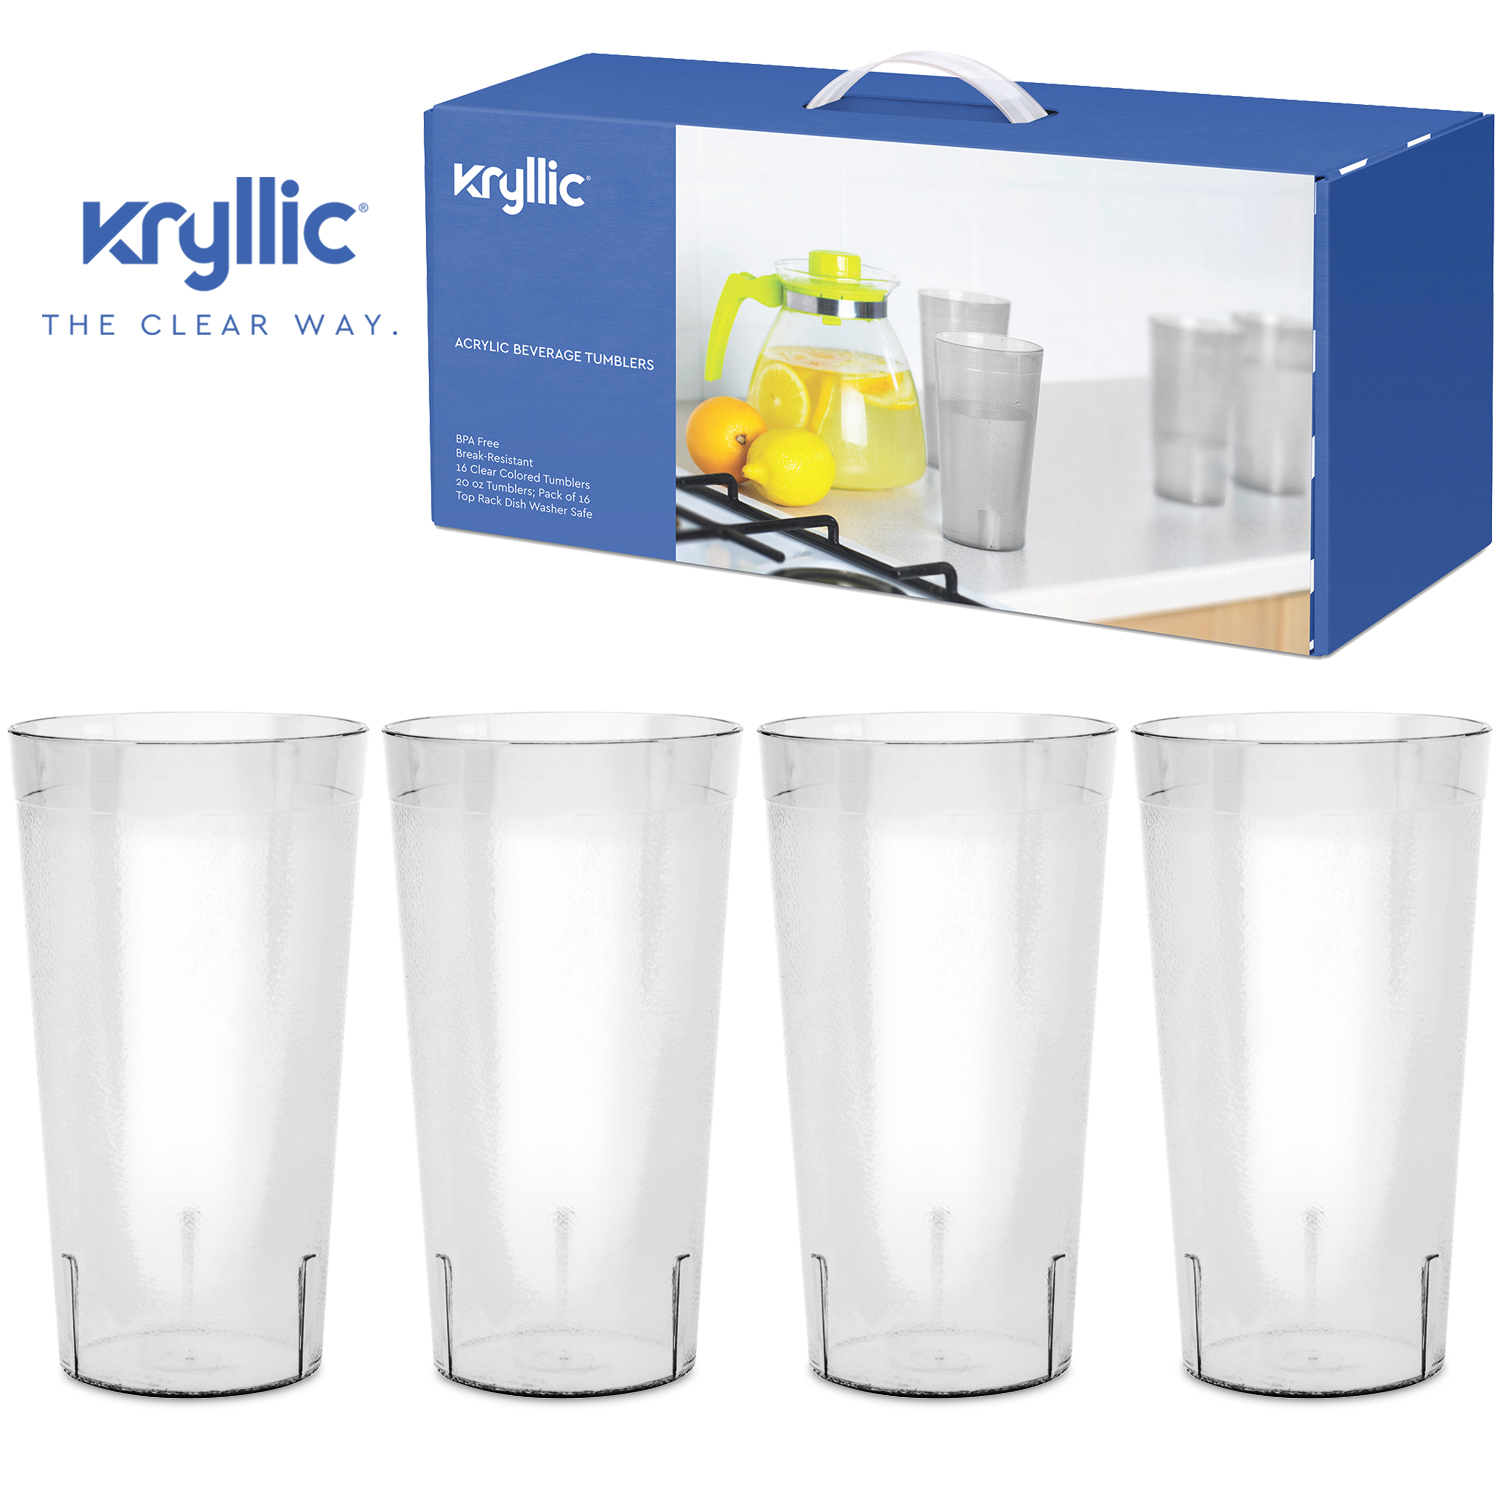 5d8c33d89d19 Reusable Plastic Cup Drinkware Tumblers - 16 Clear break resistant 20 oz  dishwasher safe drinking stacking water glasses cups! great decorations  restaurant ...